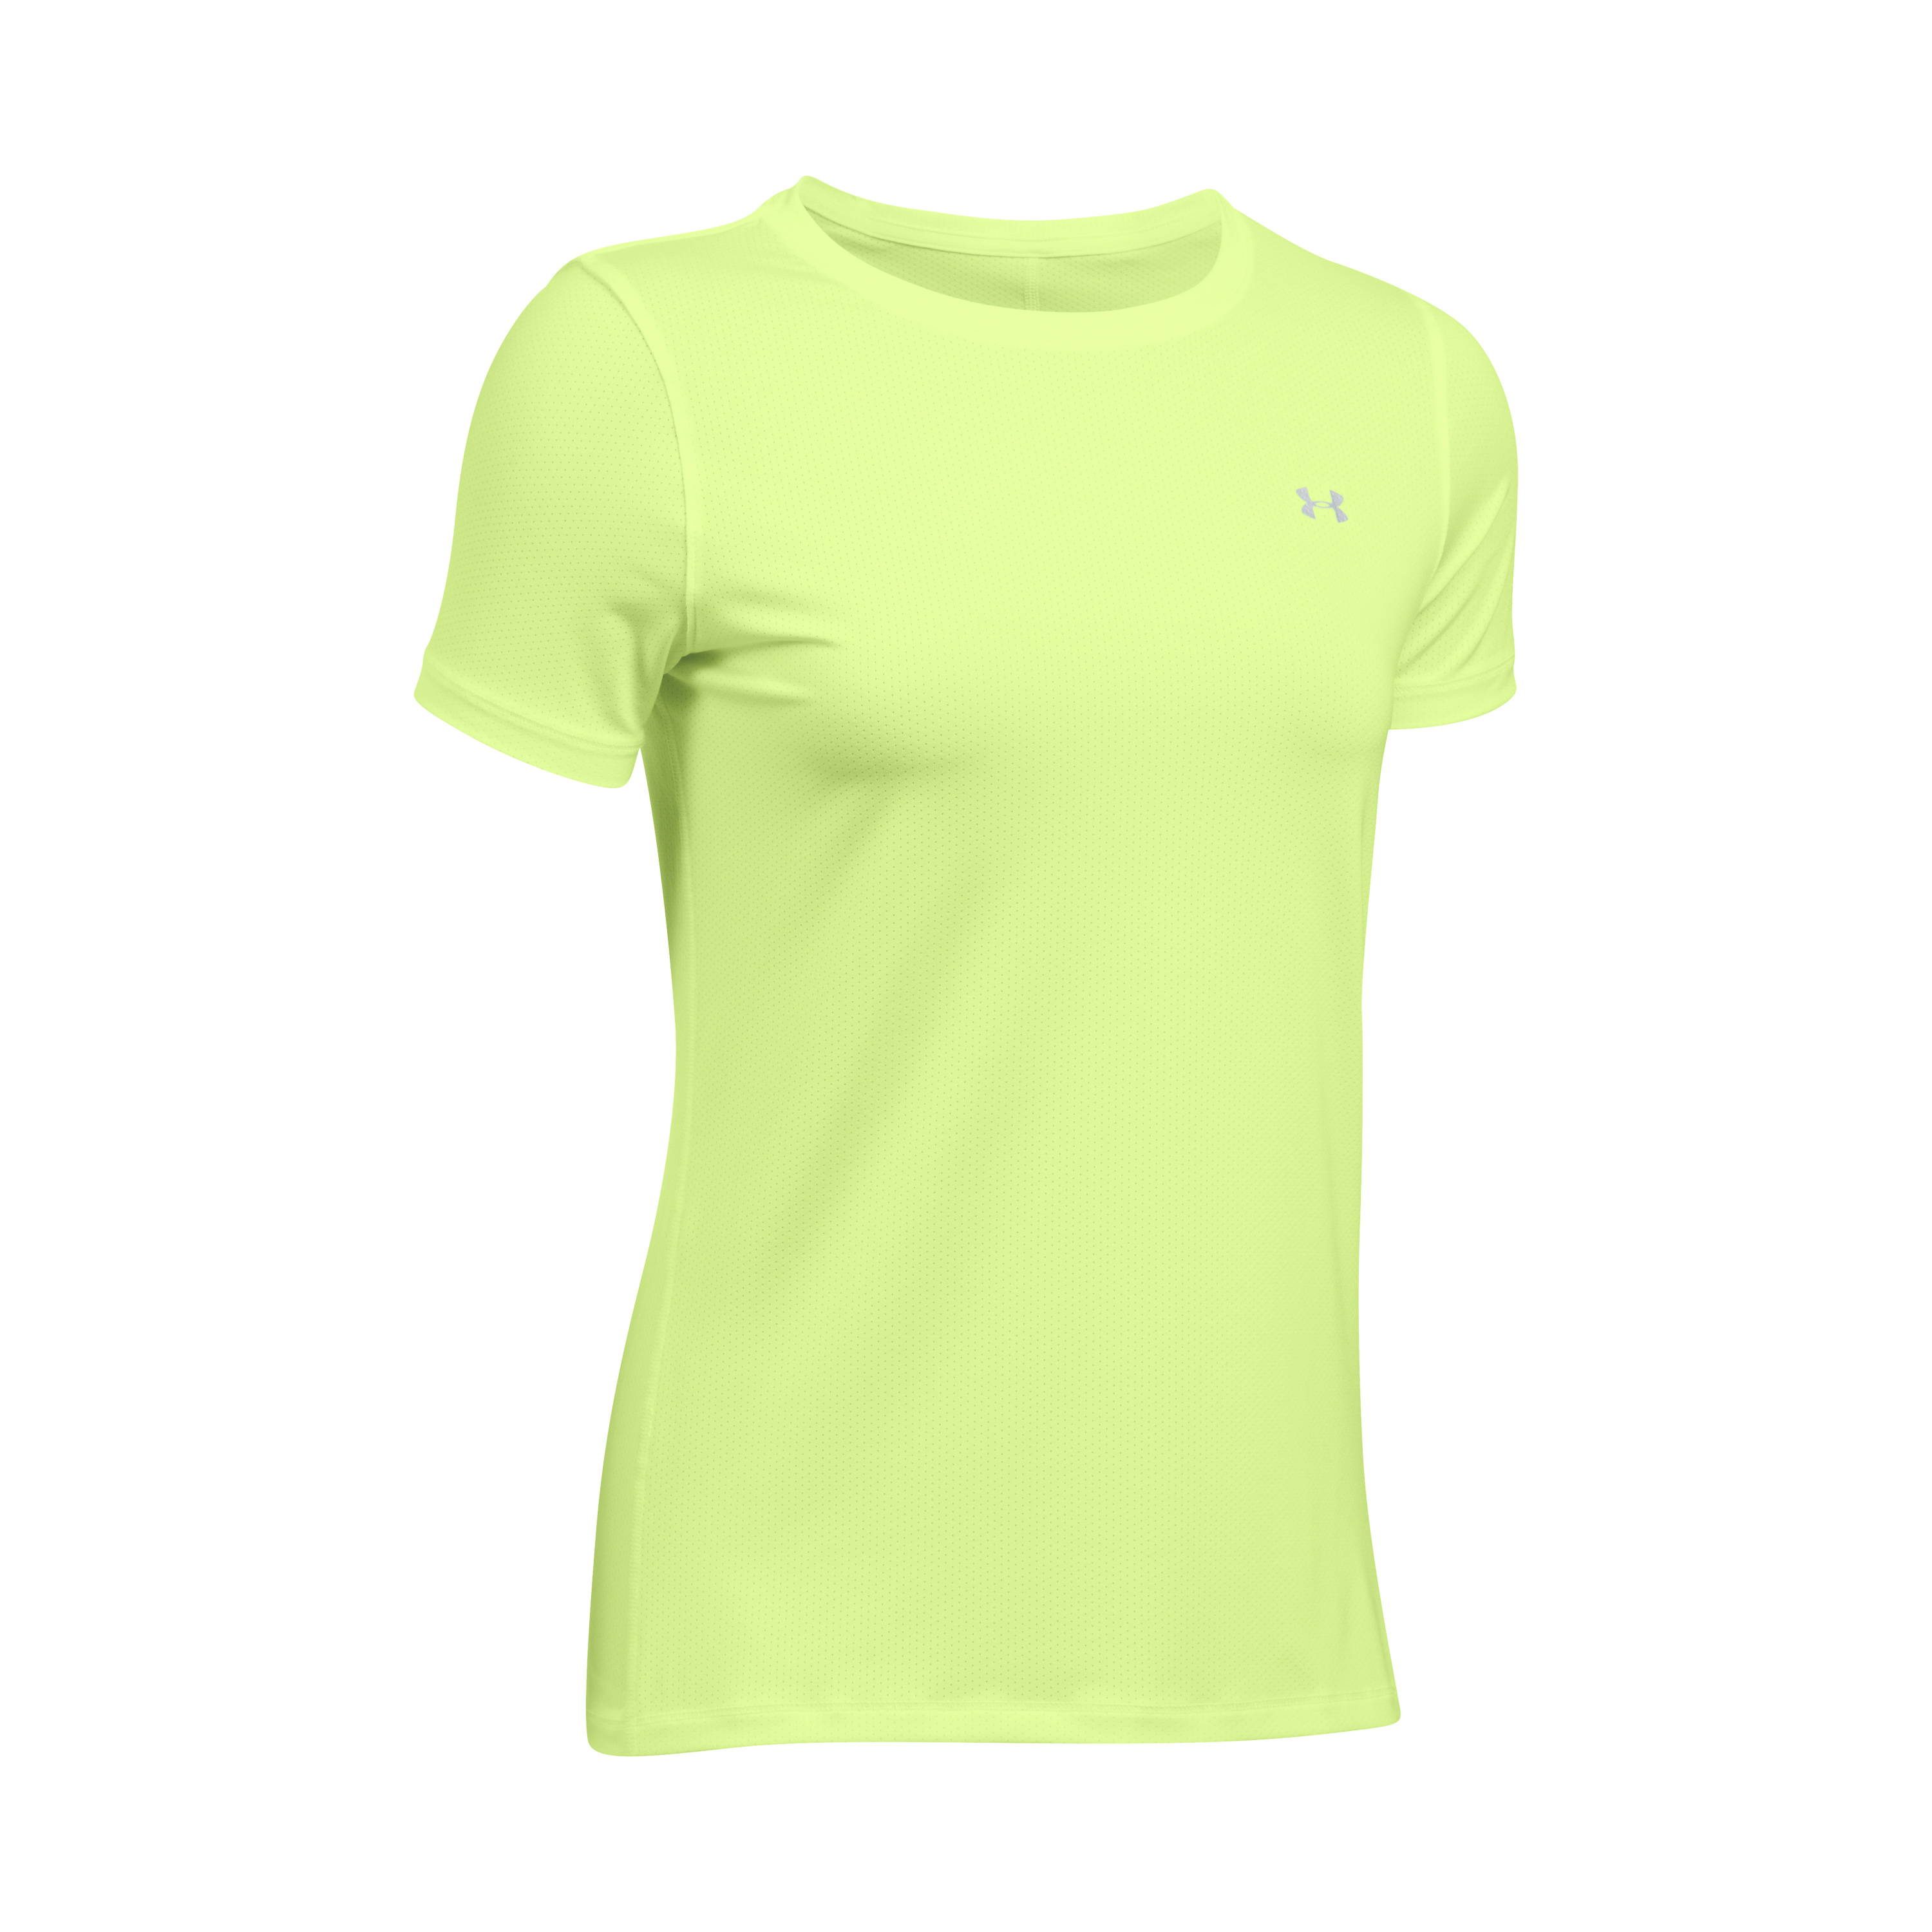 Under Armour Fitness Woman's Armour Shirt green